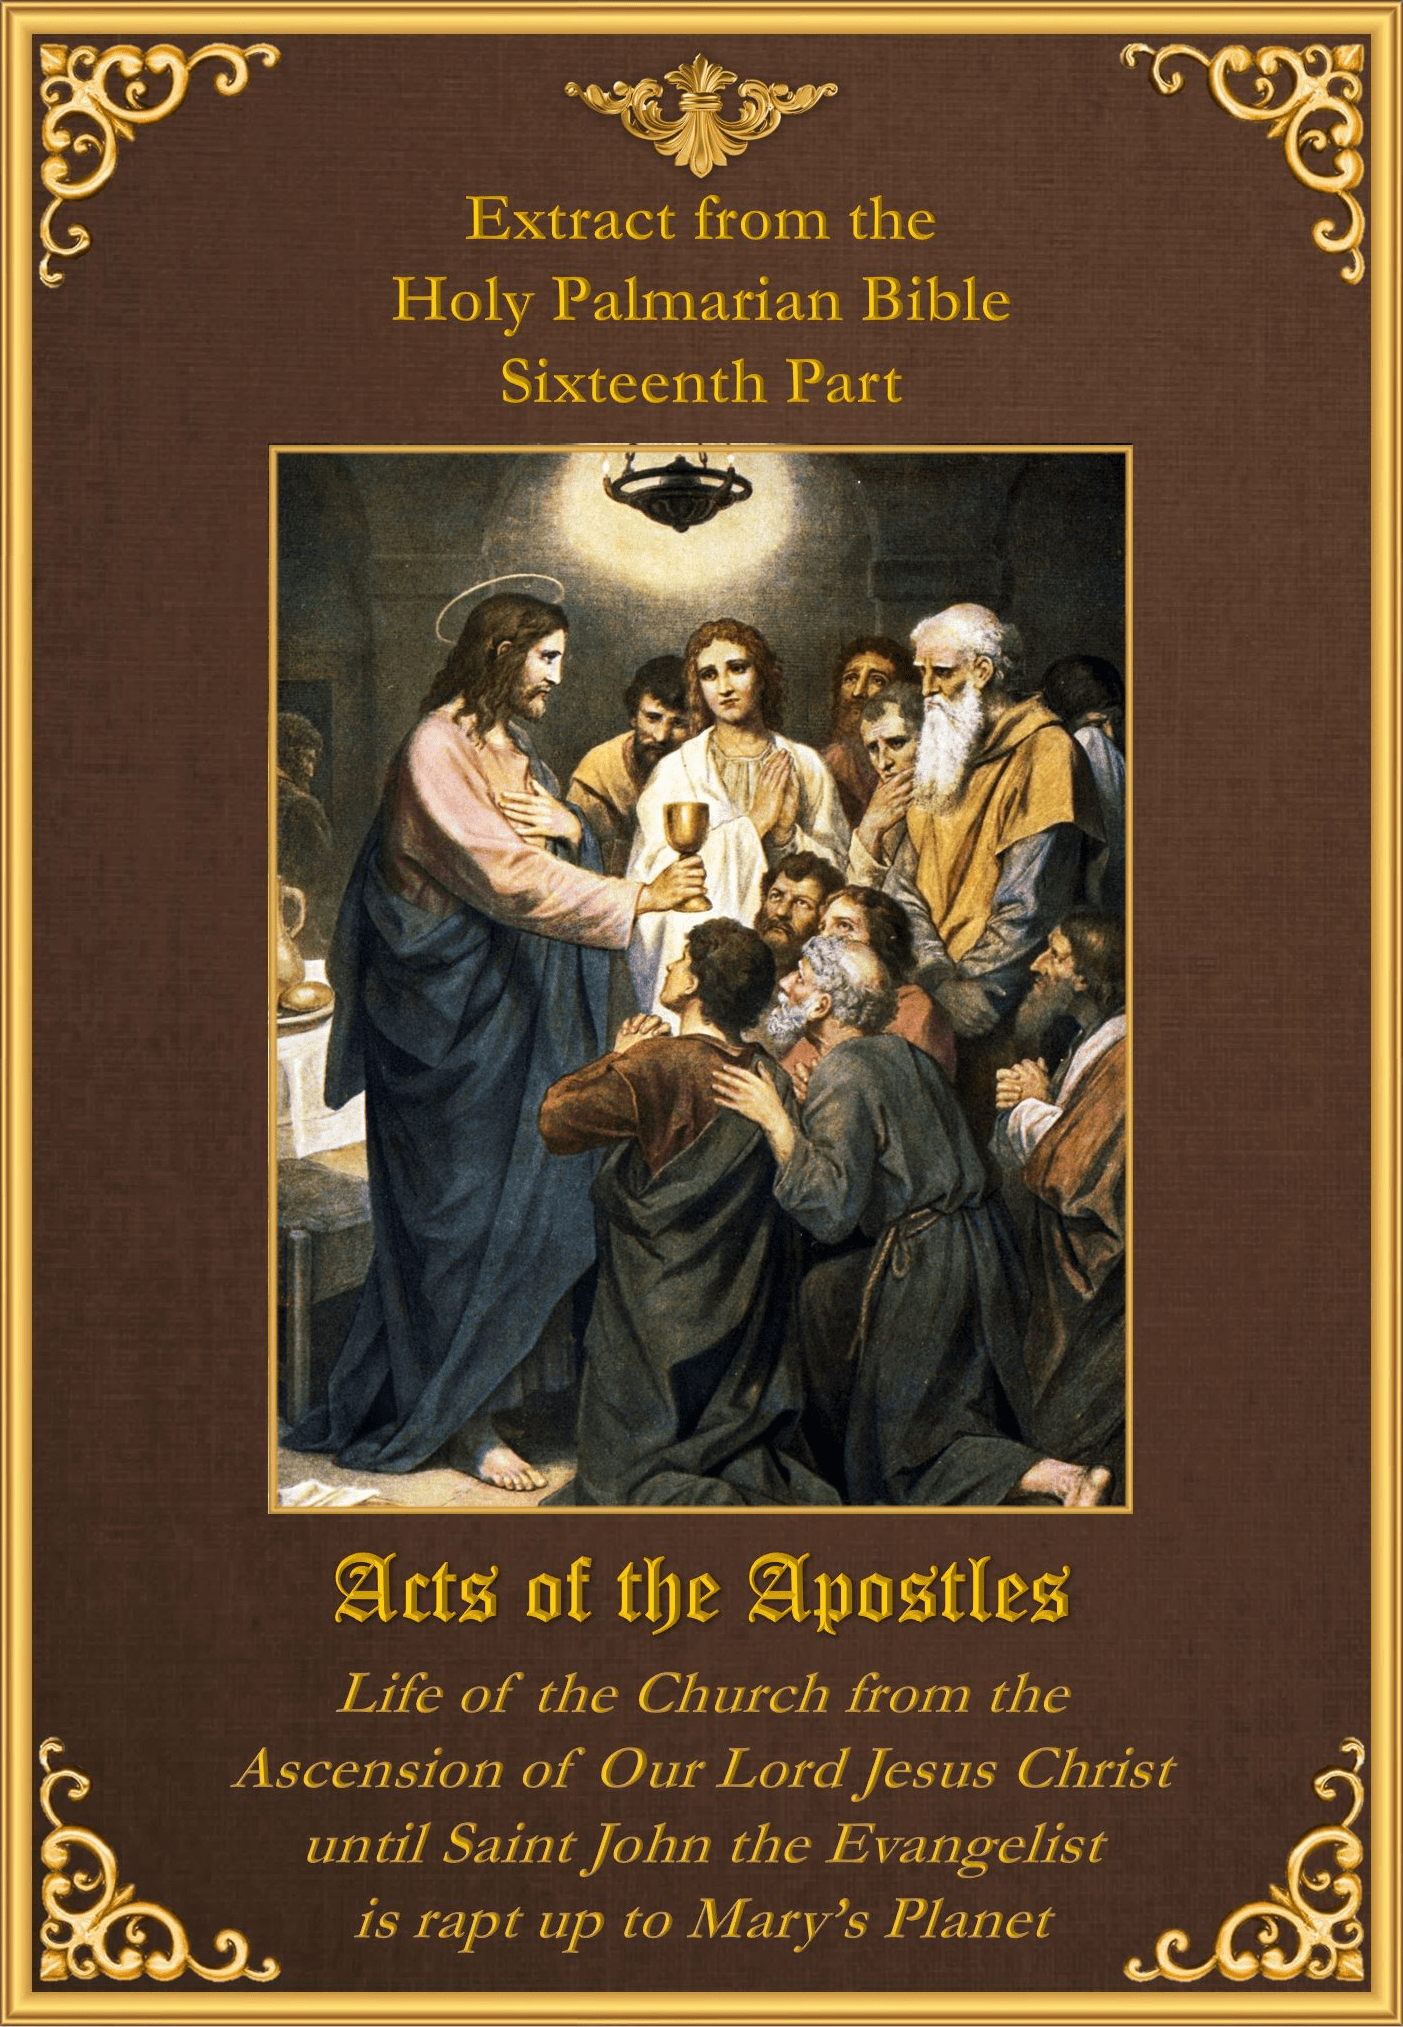 """<a href=""""/wp-content/uploads/2019/06/Acts-of-the-Apostles-English.pdf"""" title=""""Acts of the Apostles"""">Acts of the Apostles <br><br>See more</a>"""